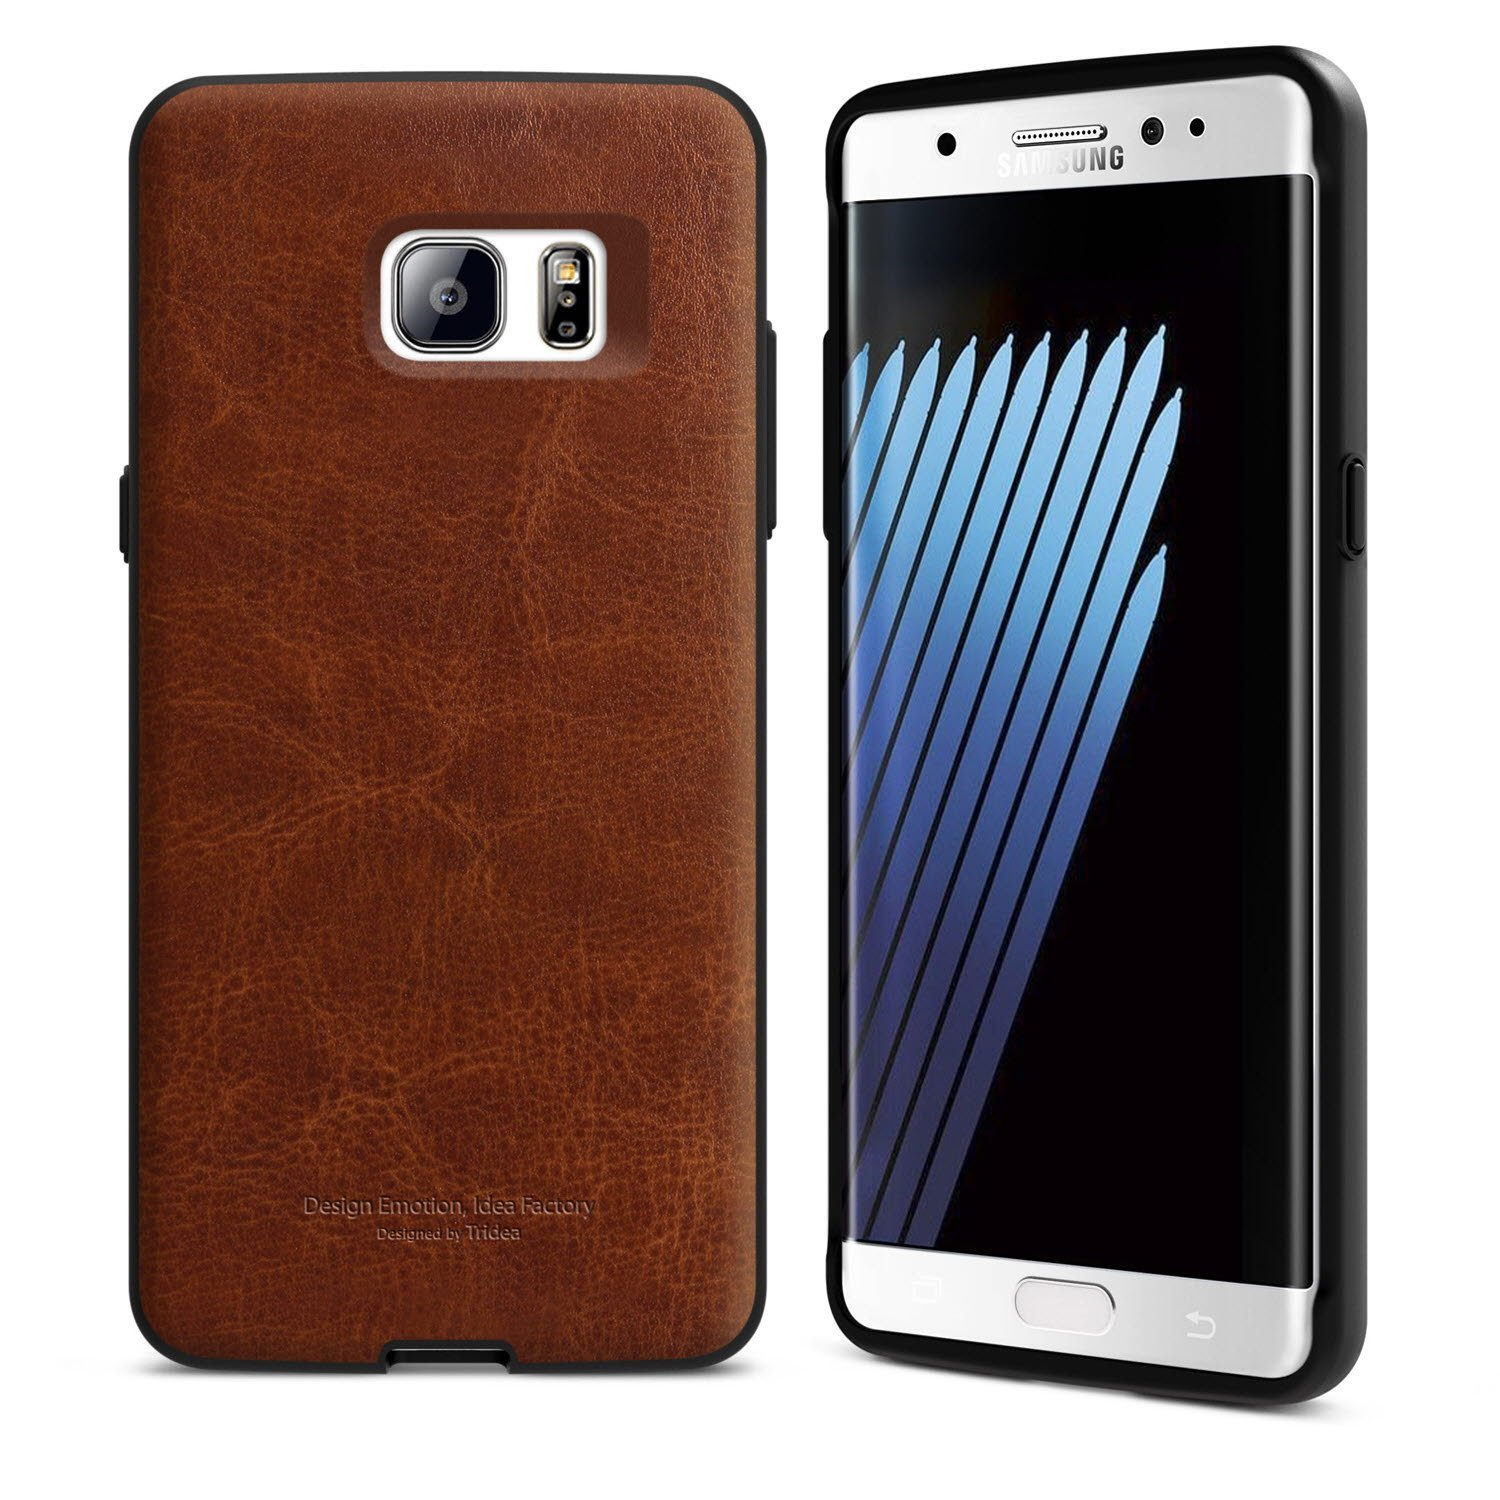 Galaxy Note 7 Case [Tridea] Power Guard Premium Synthetic Leather Bumper [Shock Resistant][Scratch-Resistant] with Hidden Card Storage Case for Galaxy Note7 (2016) [Brown]